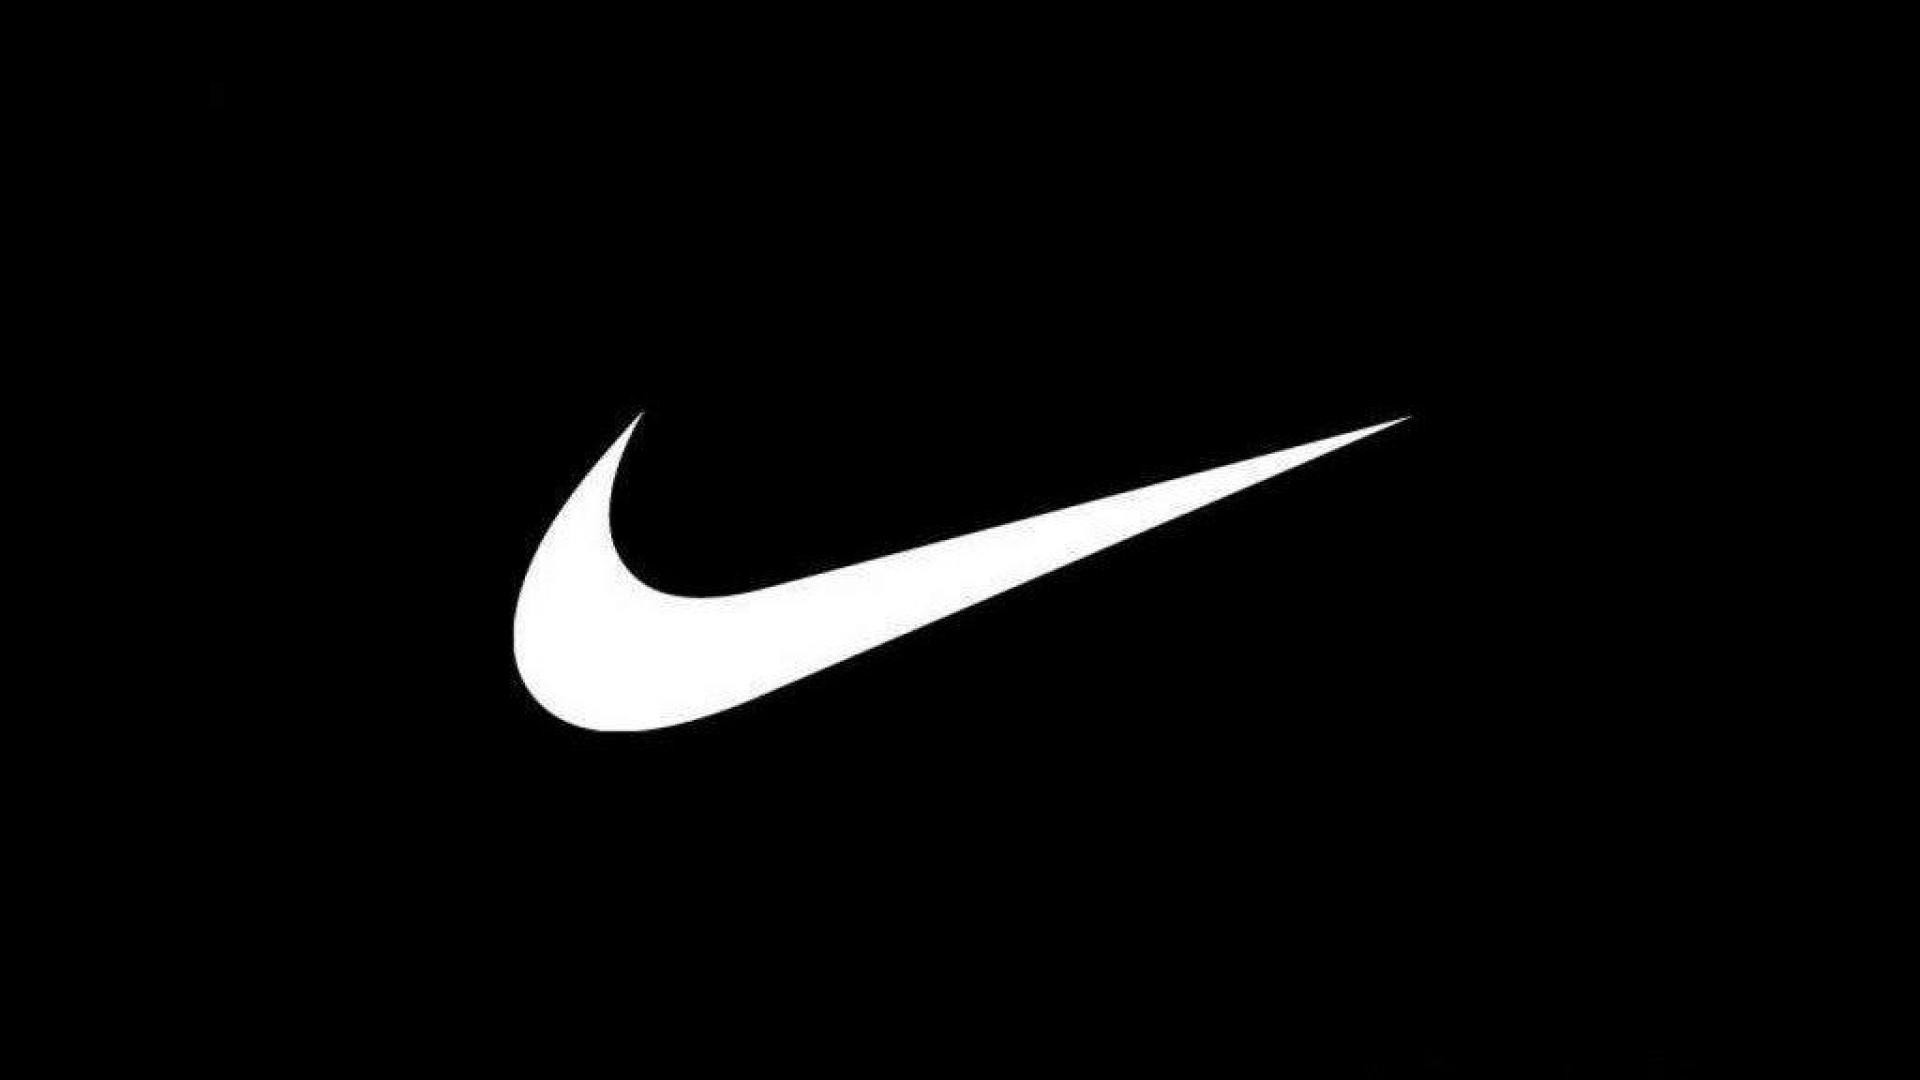 1920x1080 Nike Swoosh Wallpapers and Background